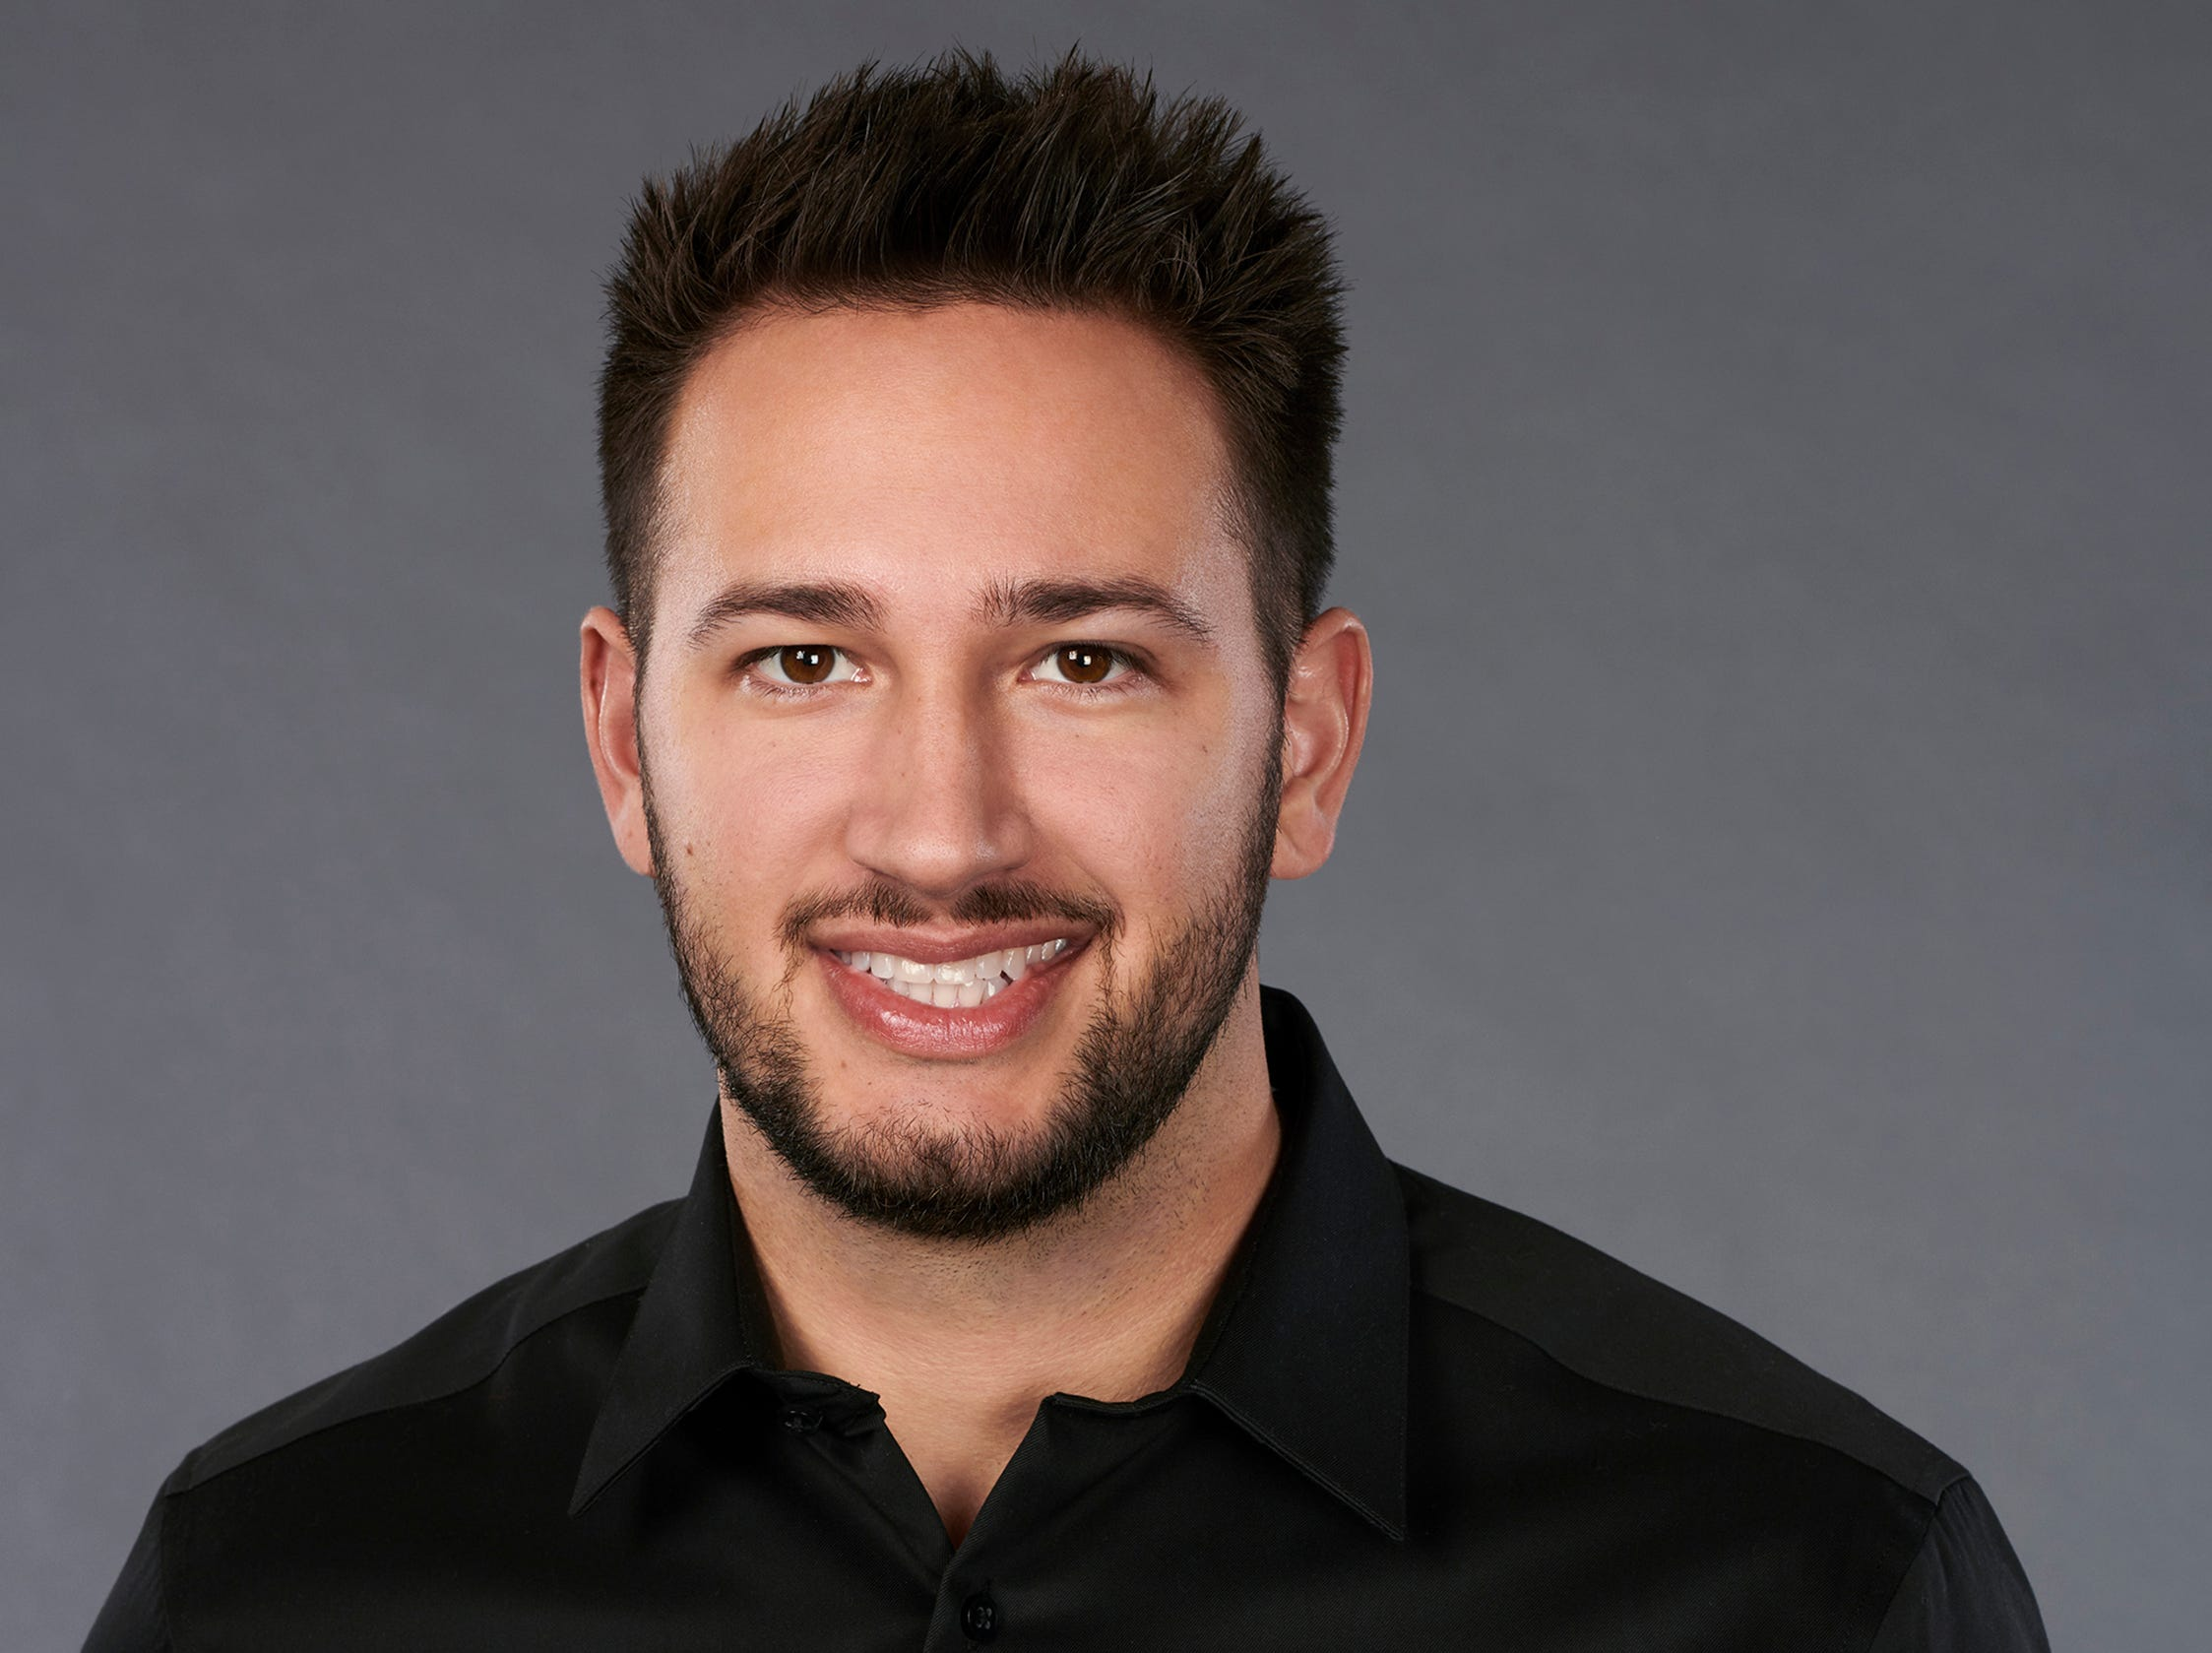 """The Bachelorette"" Season 23 contestant:  Scott, 28, Chicago,  software sales executive"